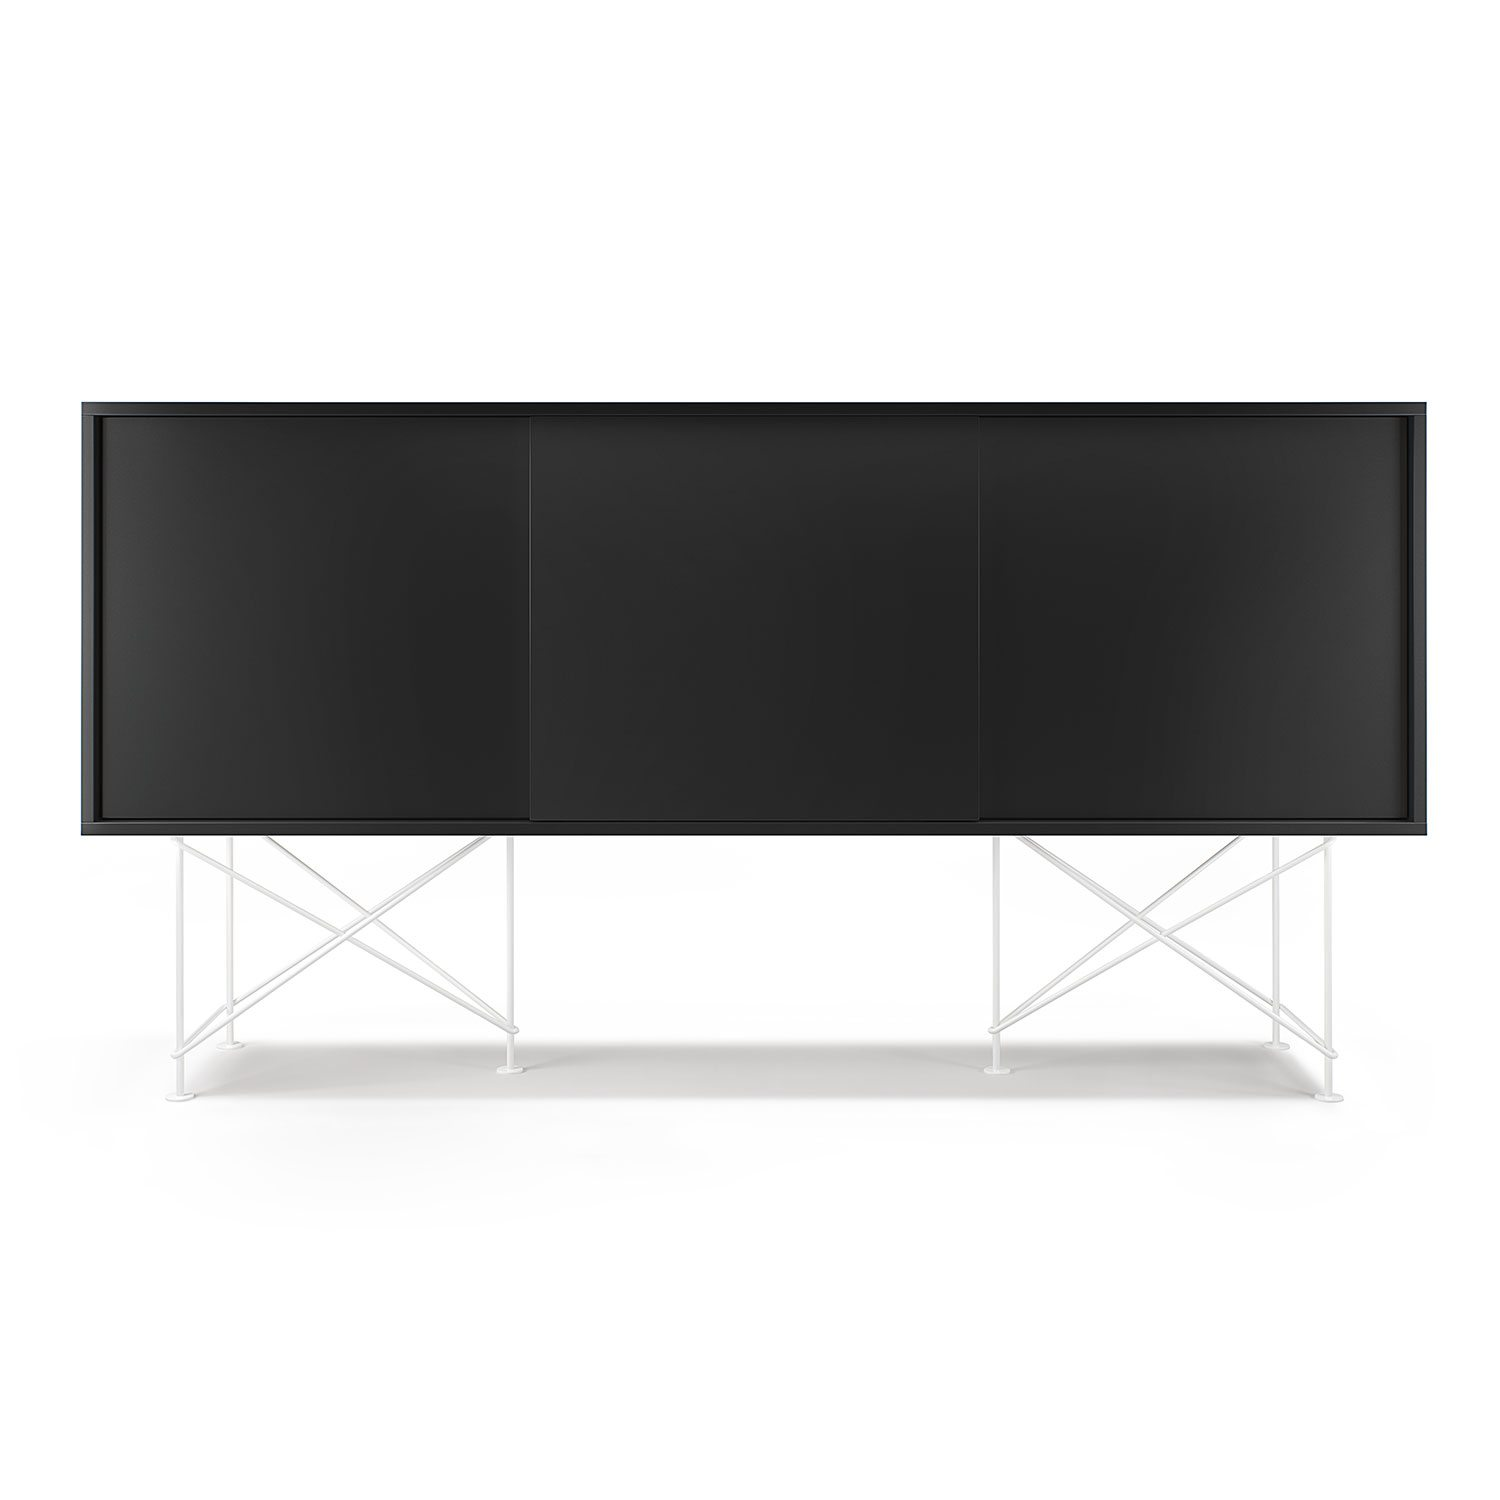 Vogue sideboard 180h, antracit/3A/vit